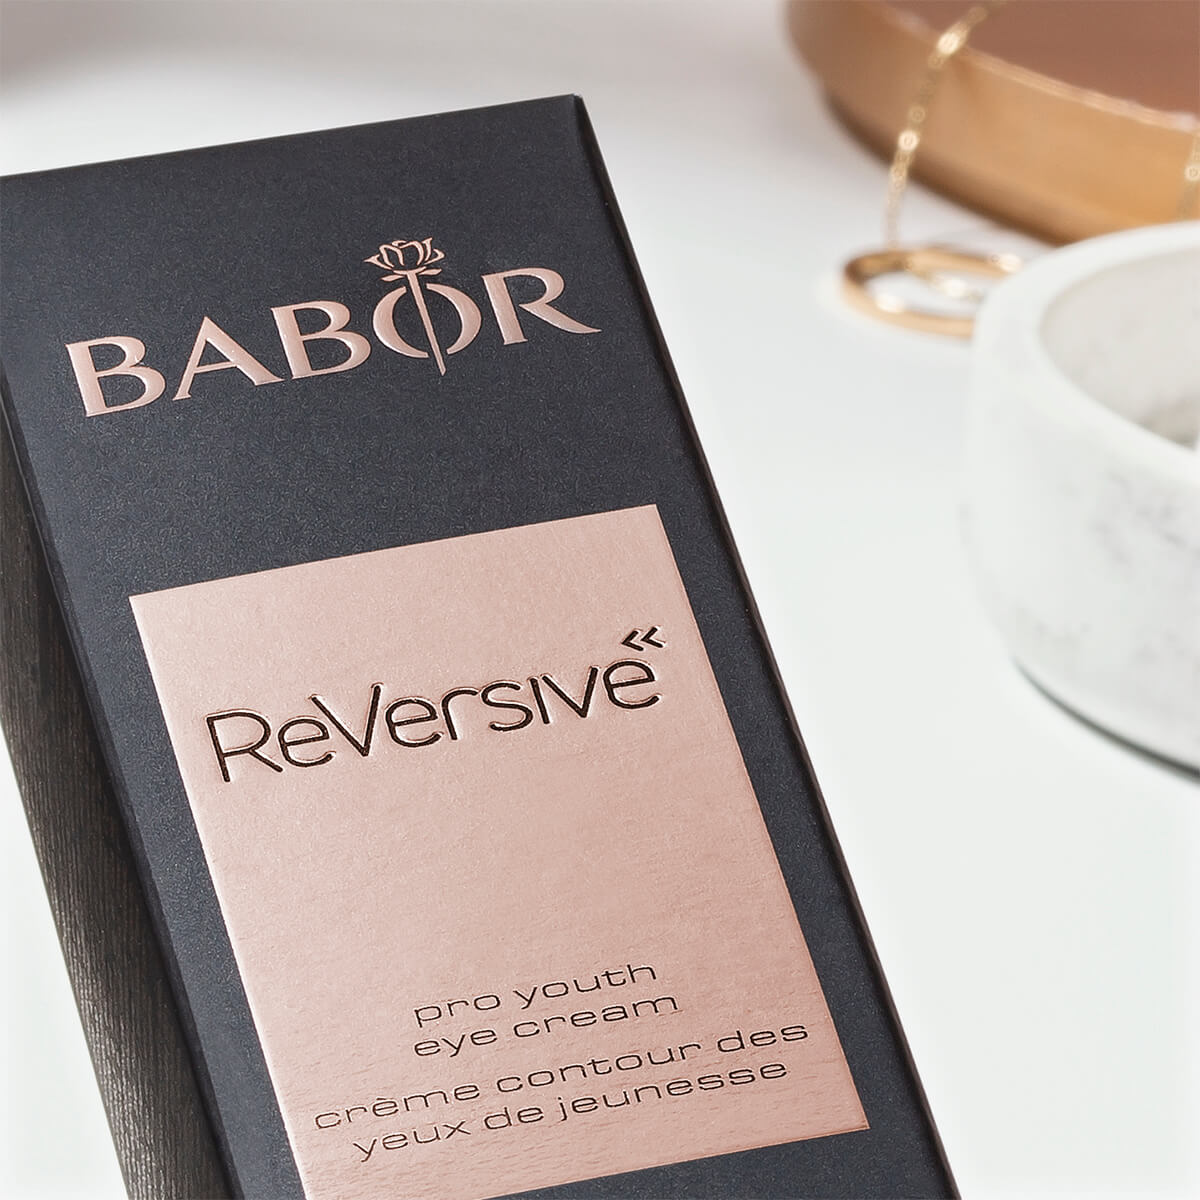 BABOR Reversive Pro Youth Eye Cream